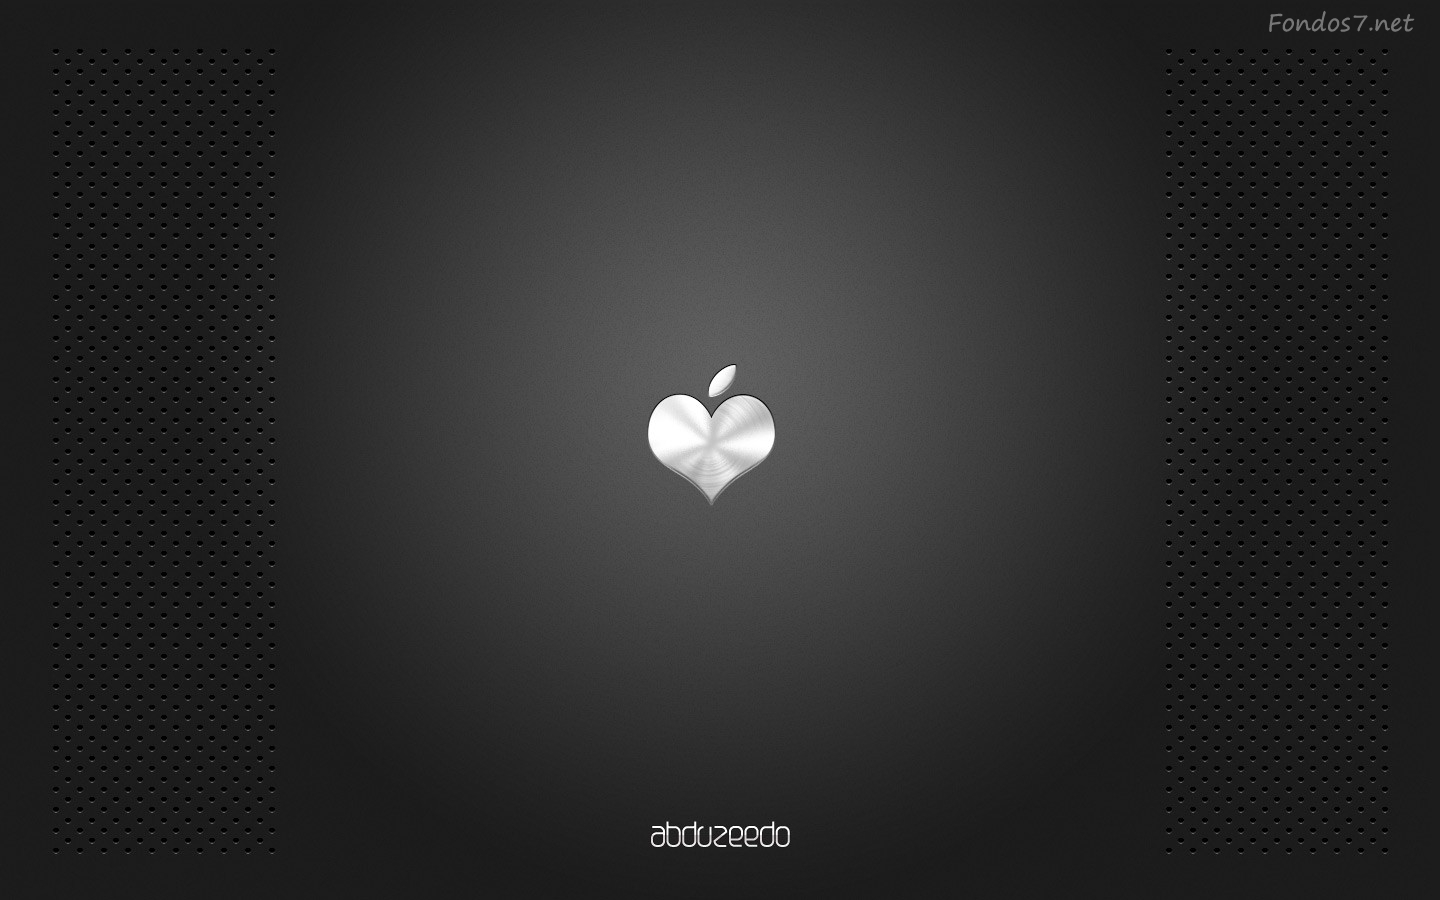 Descargar Fondos de pantalla apple love hd widescreen Gratis imagenes 1440x900